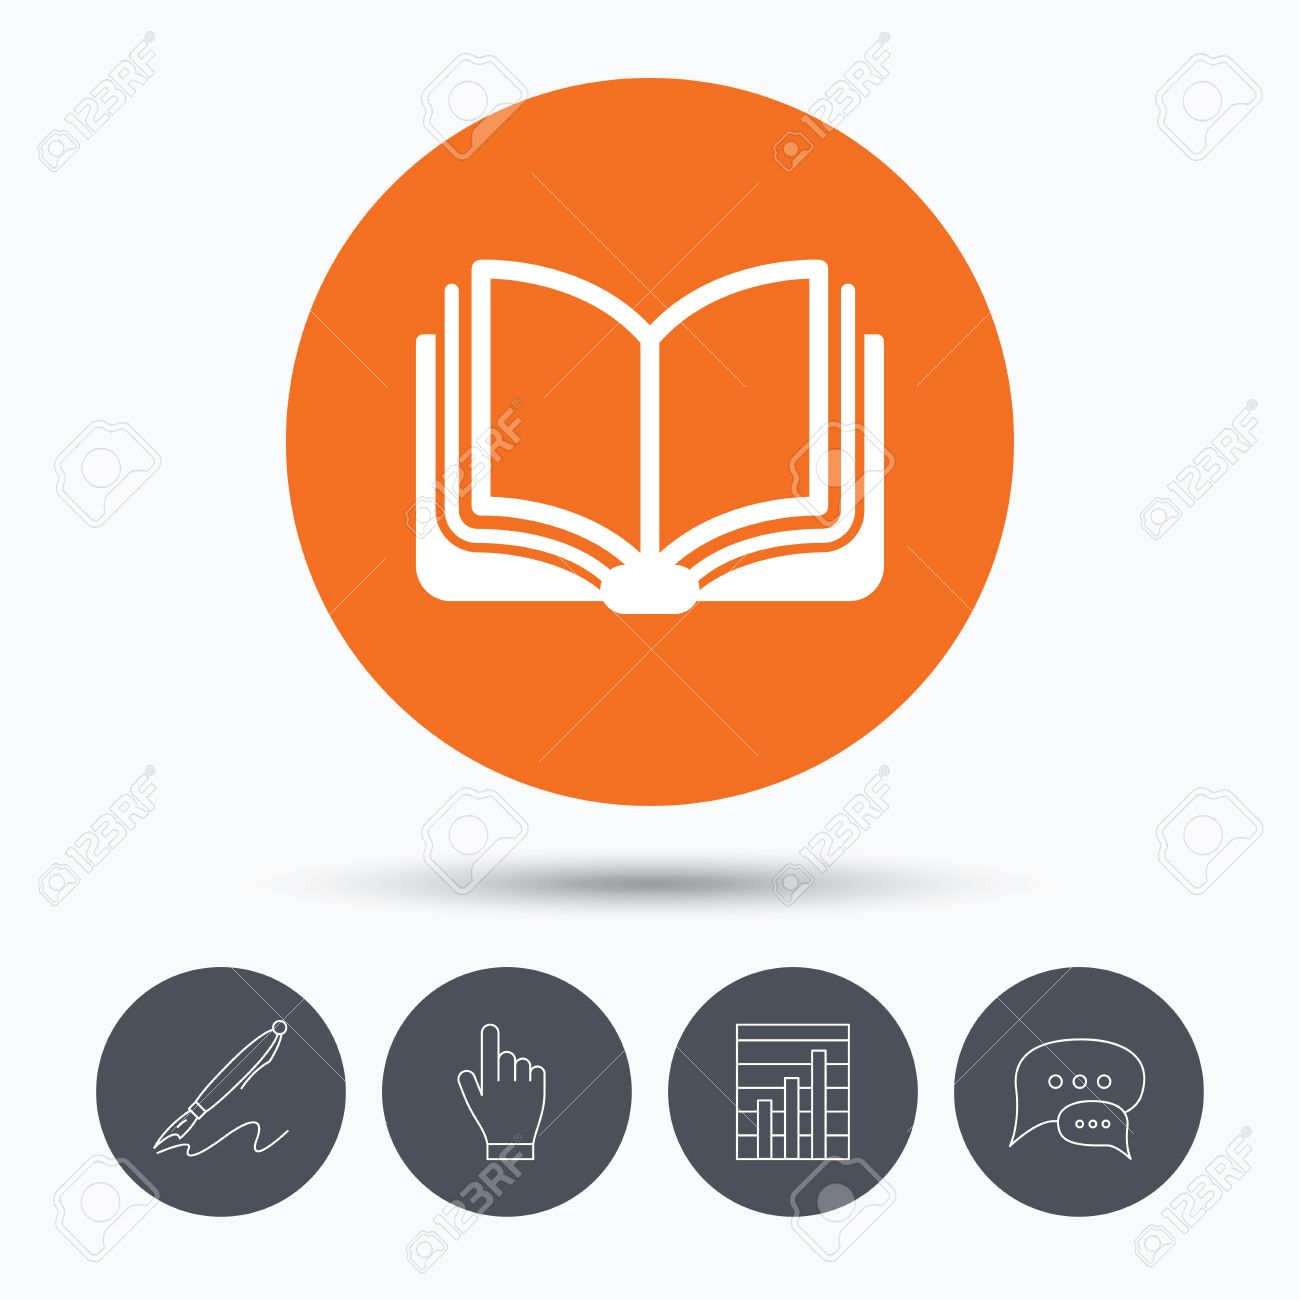 book icon study literature sign education textbook symbol  study literature sign education textbook symbol speech bubbles pen